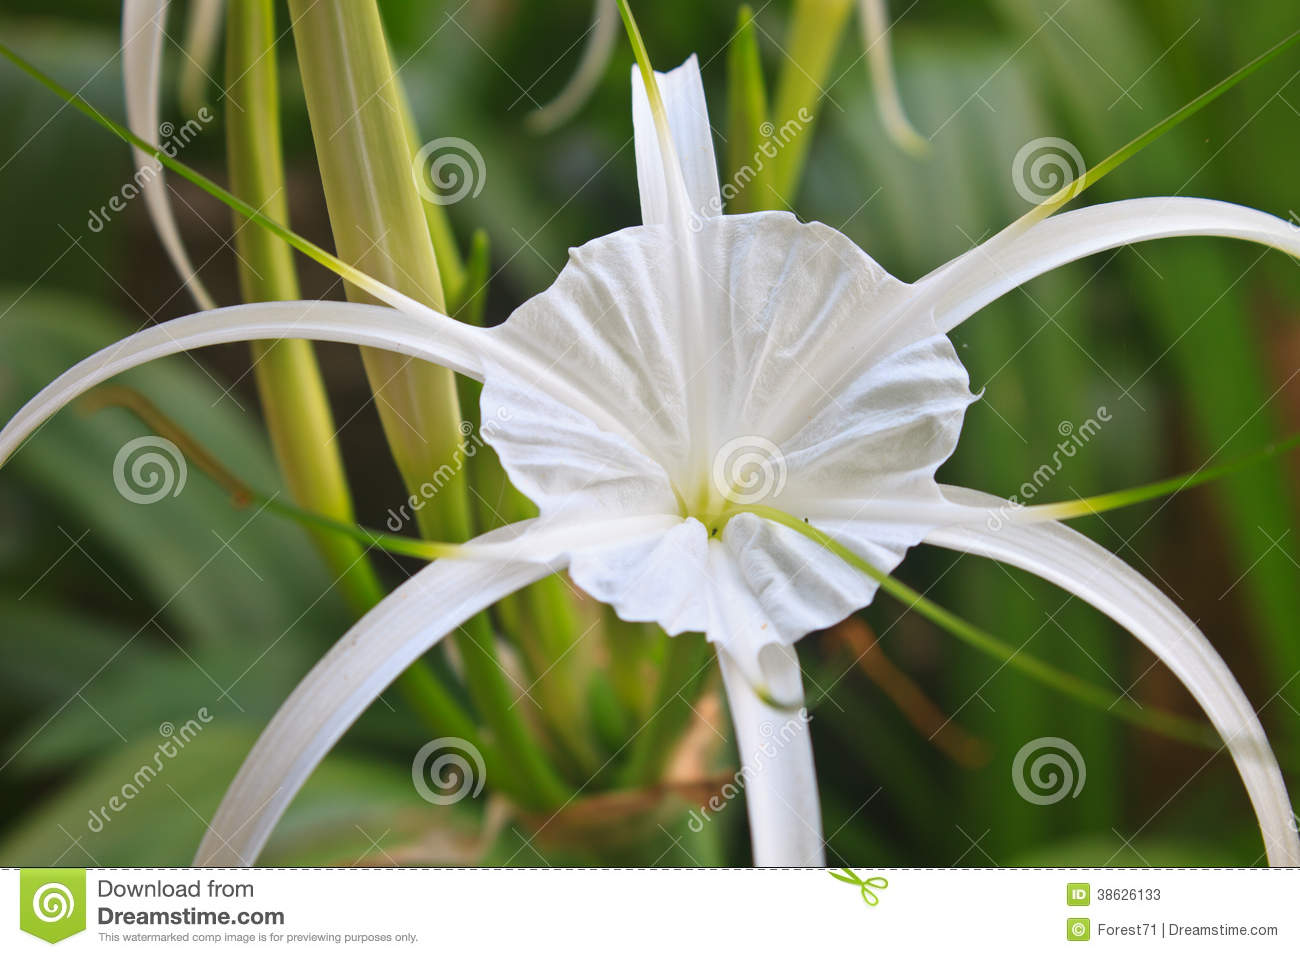 White spider lily flower stock image image of green 38626133 download comp mightylinksfo